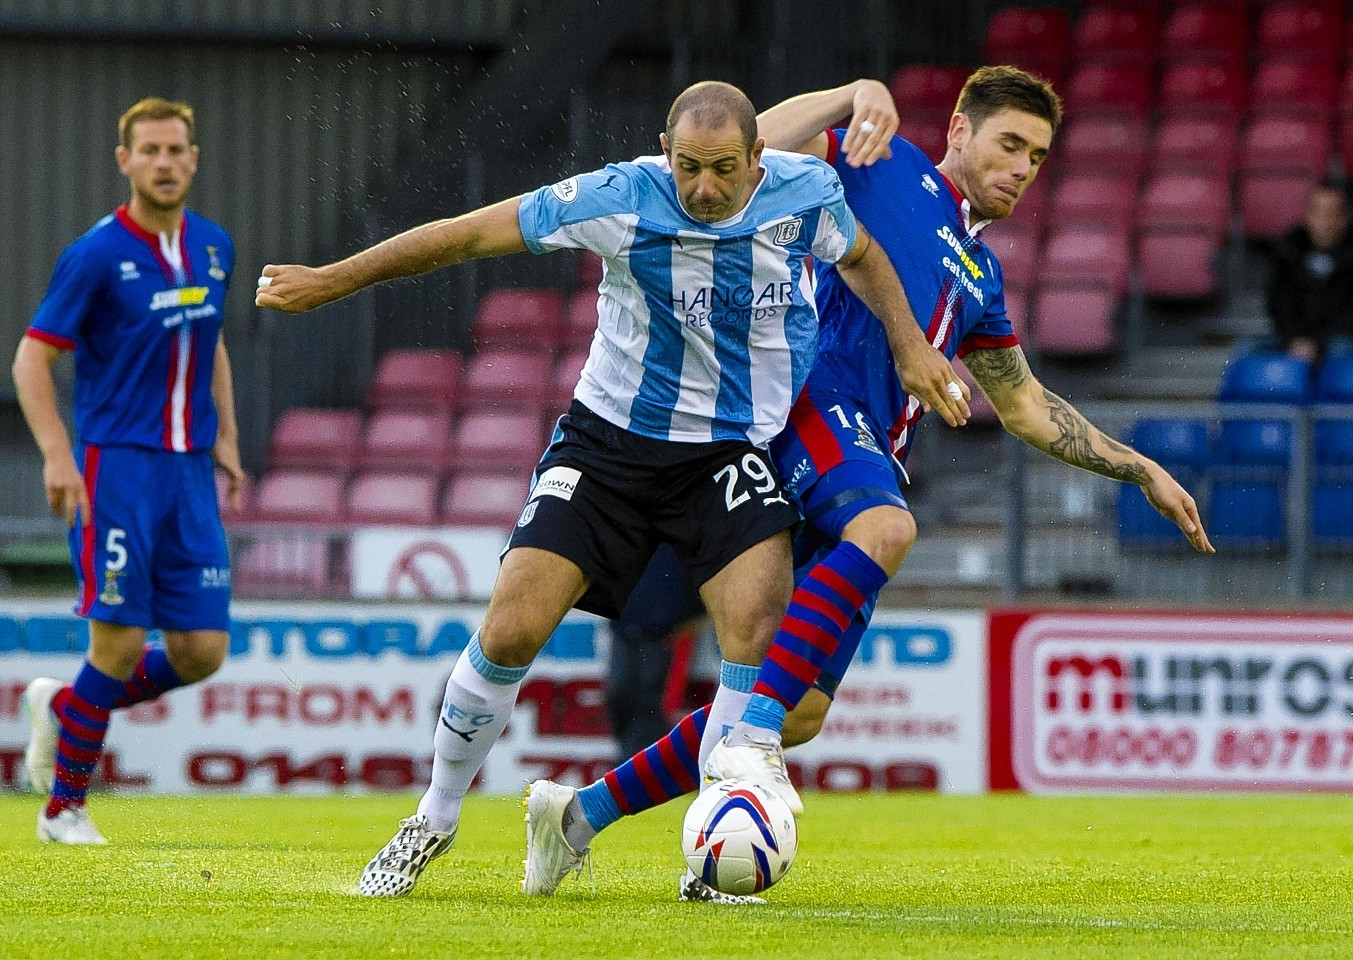 Caley Thistle vs Dundee